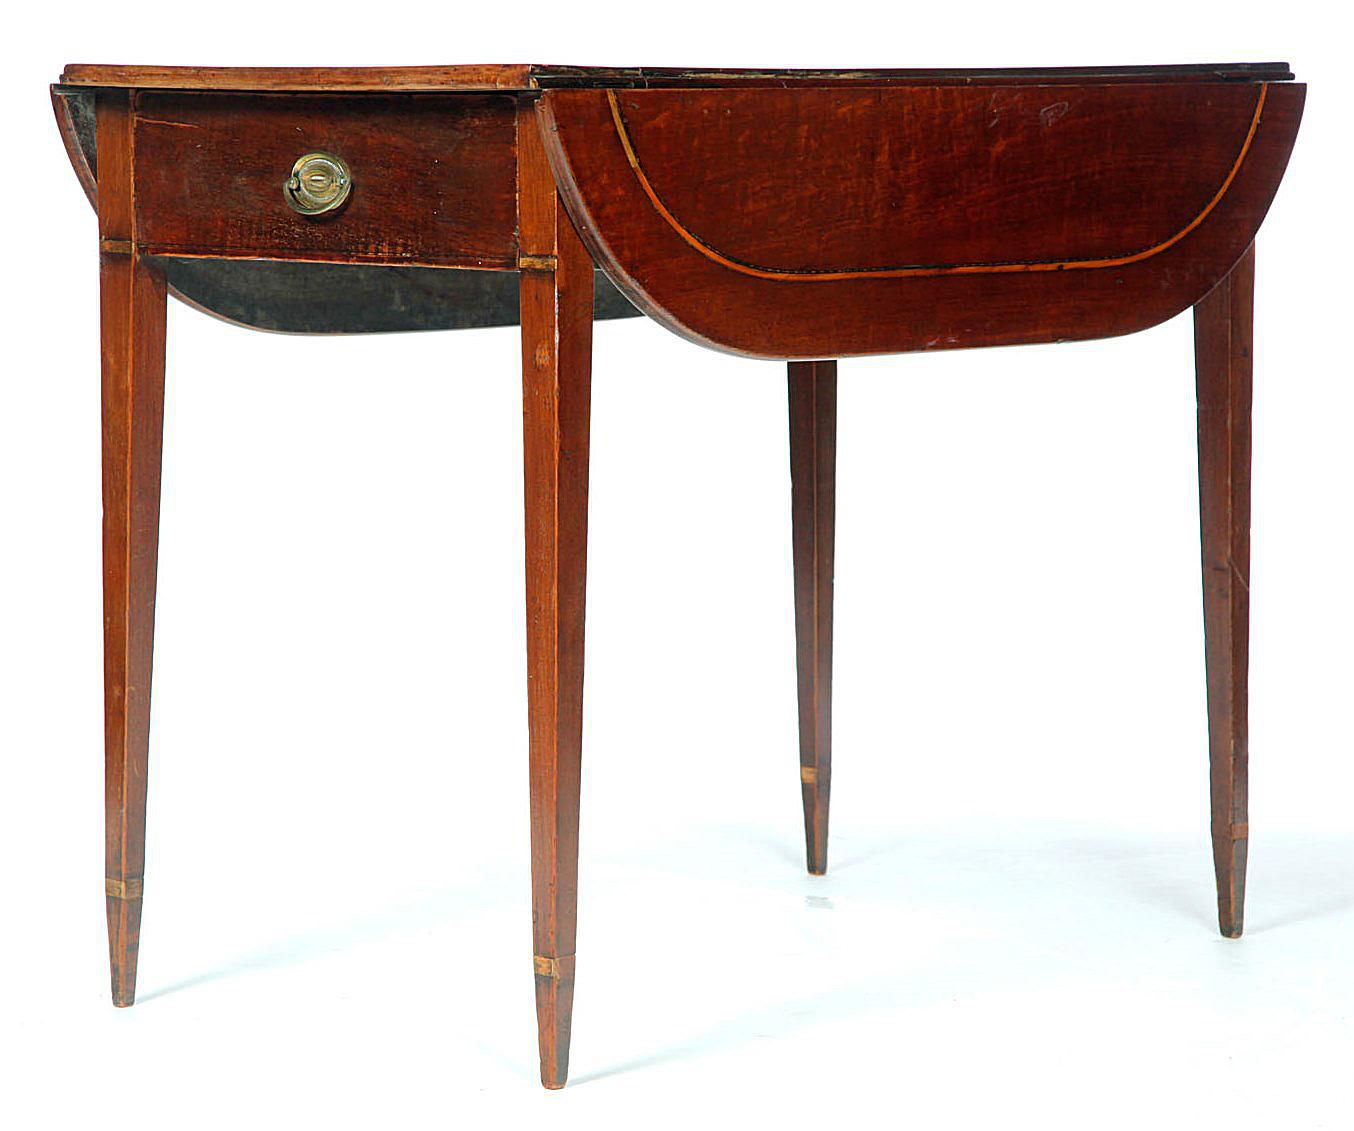 11 Examples of English Furniture. Antiques - Learn To Identify Antique Furniture Chair Styles